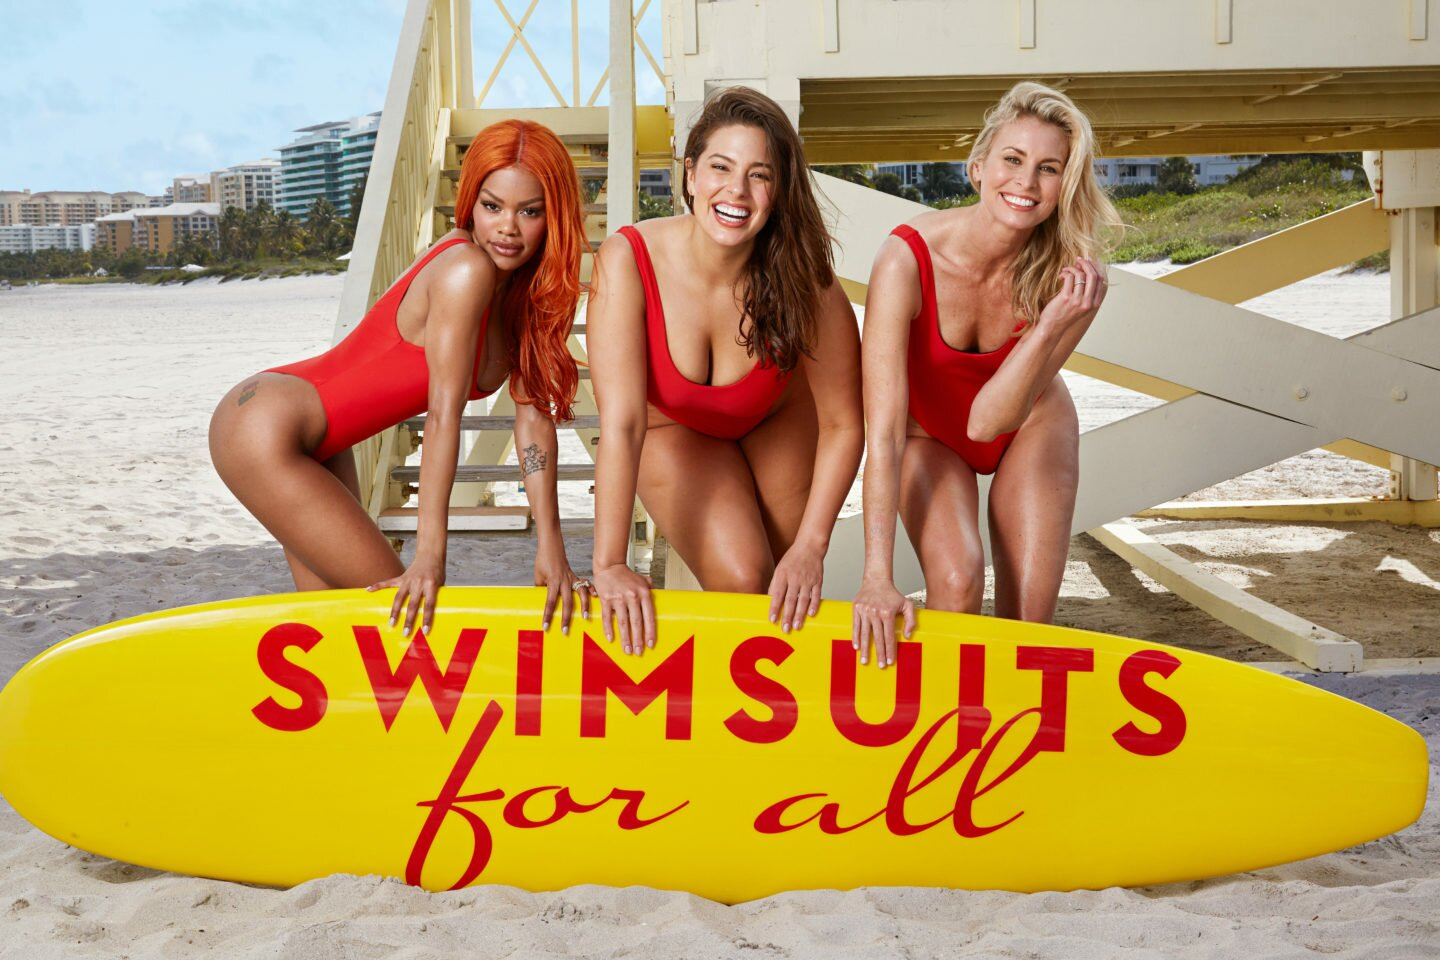 Swimsuits for All brings baywatch back to life